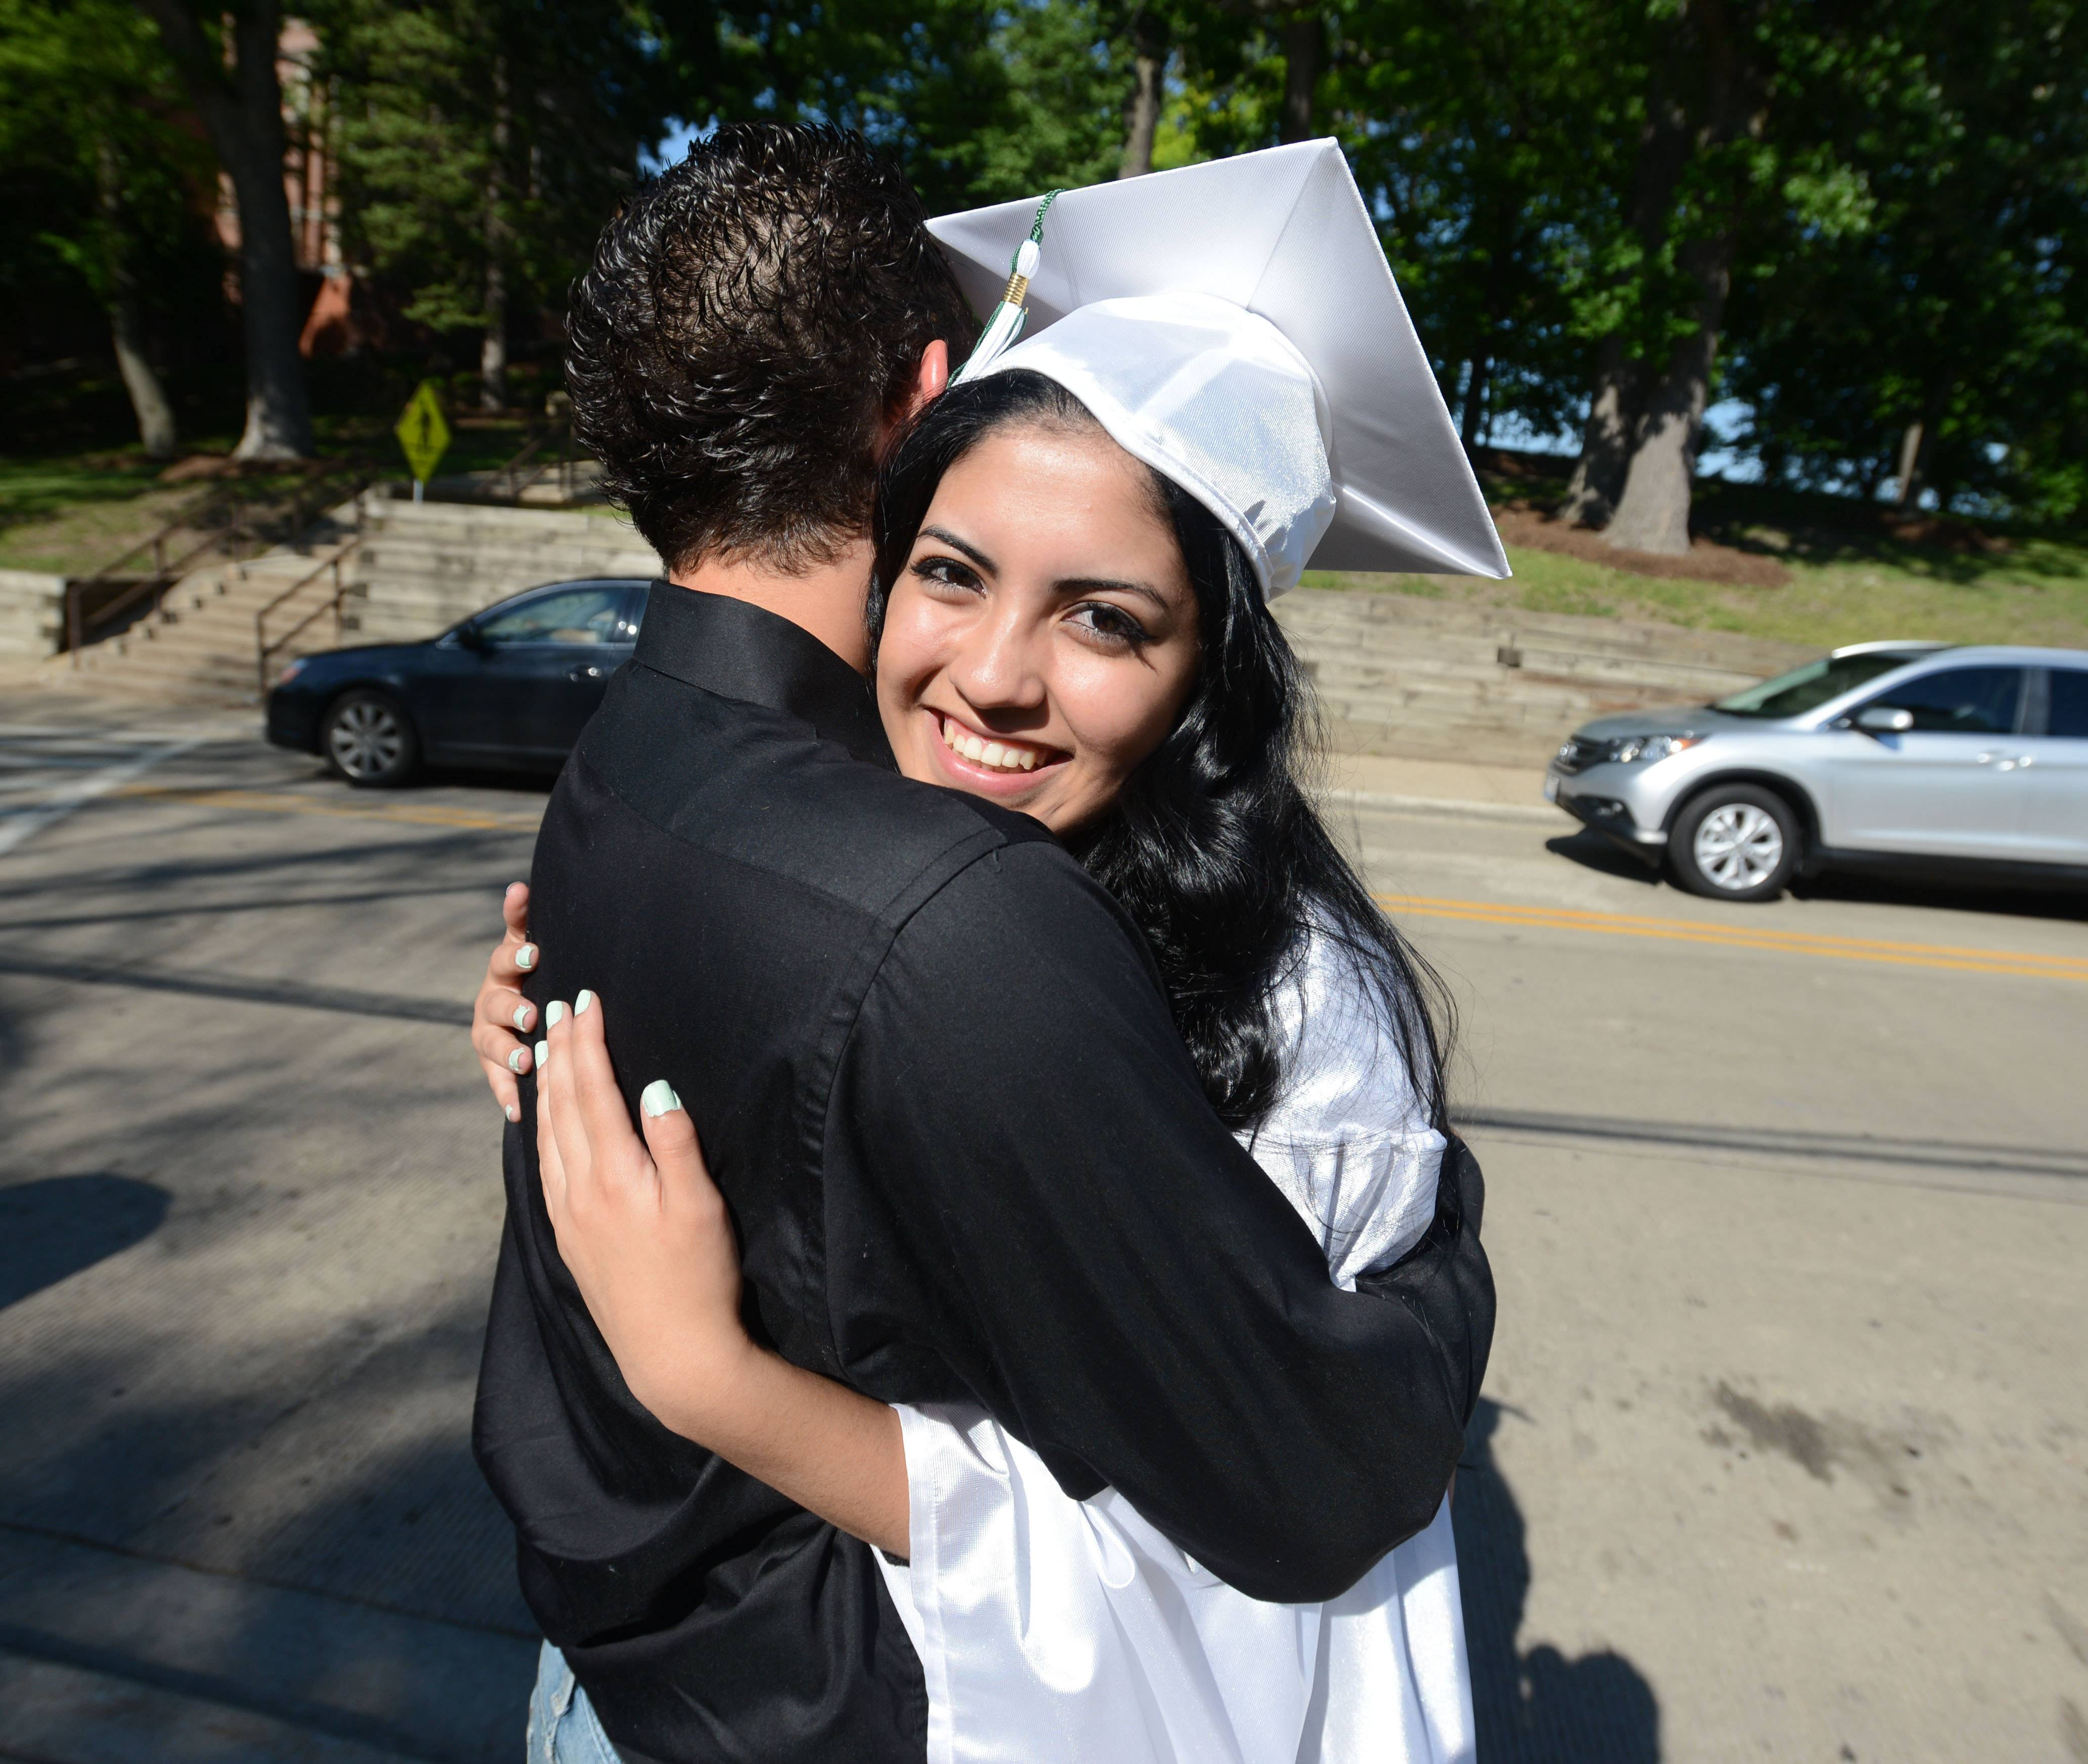 Carlos Robles,18, of Carol Stream hugs Ana Ramirez,18, of Glendale Heights before the Glenbard West High School graduation ceremony Friday.